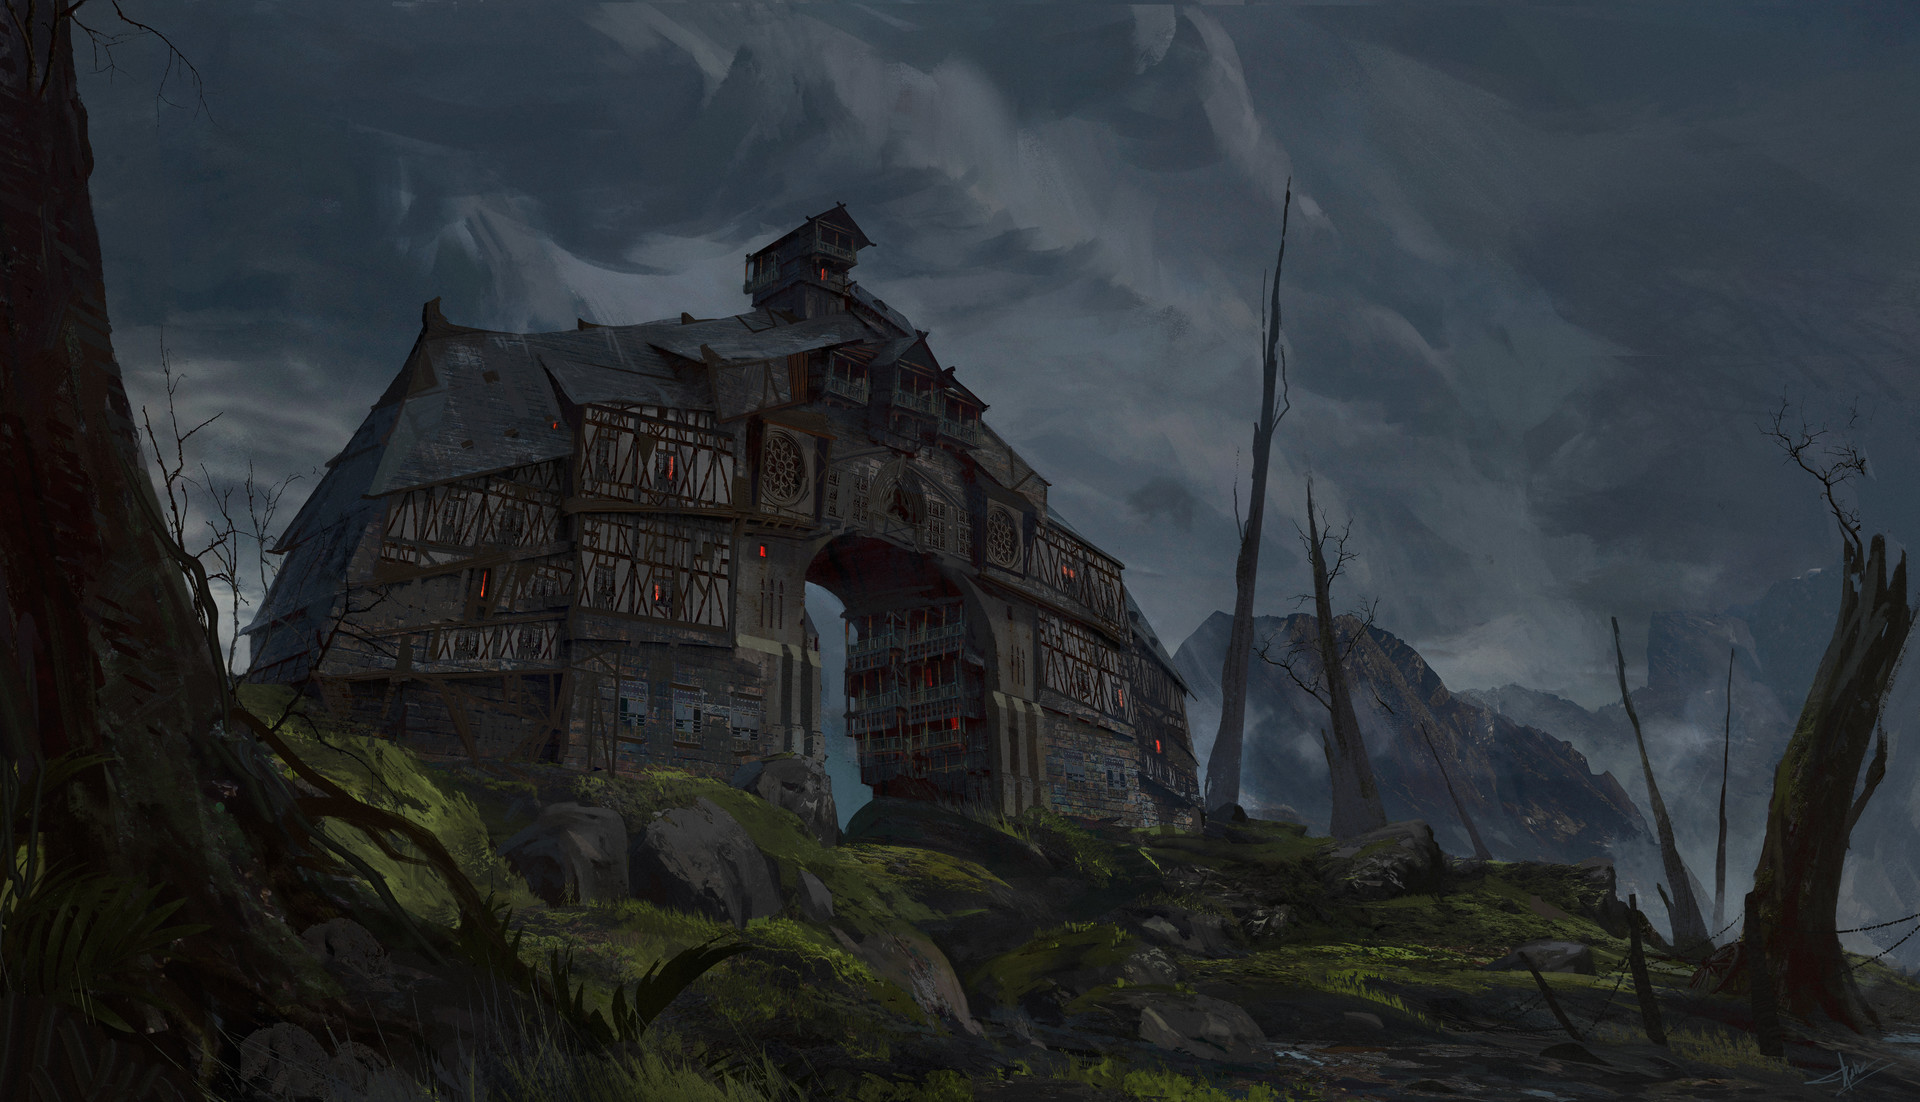 pablo dominguez digital painting medevial village concept art